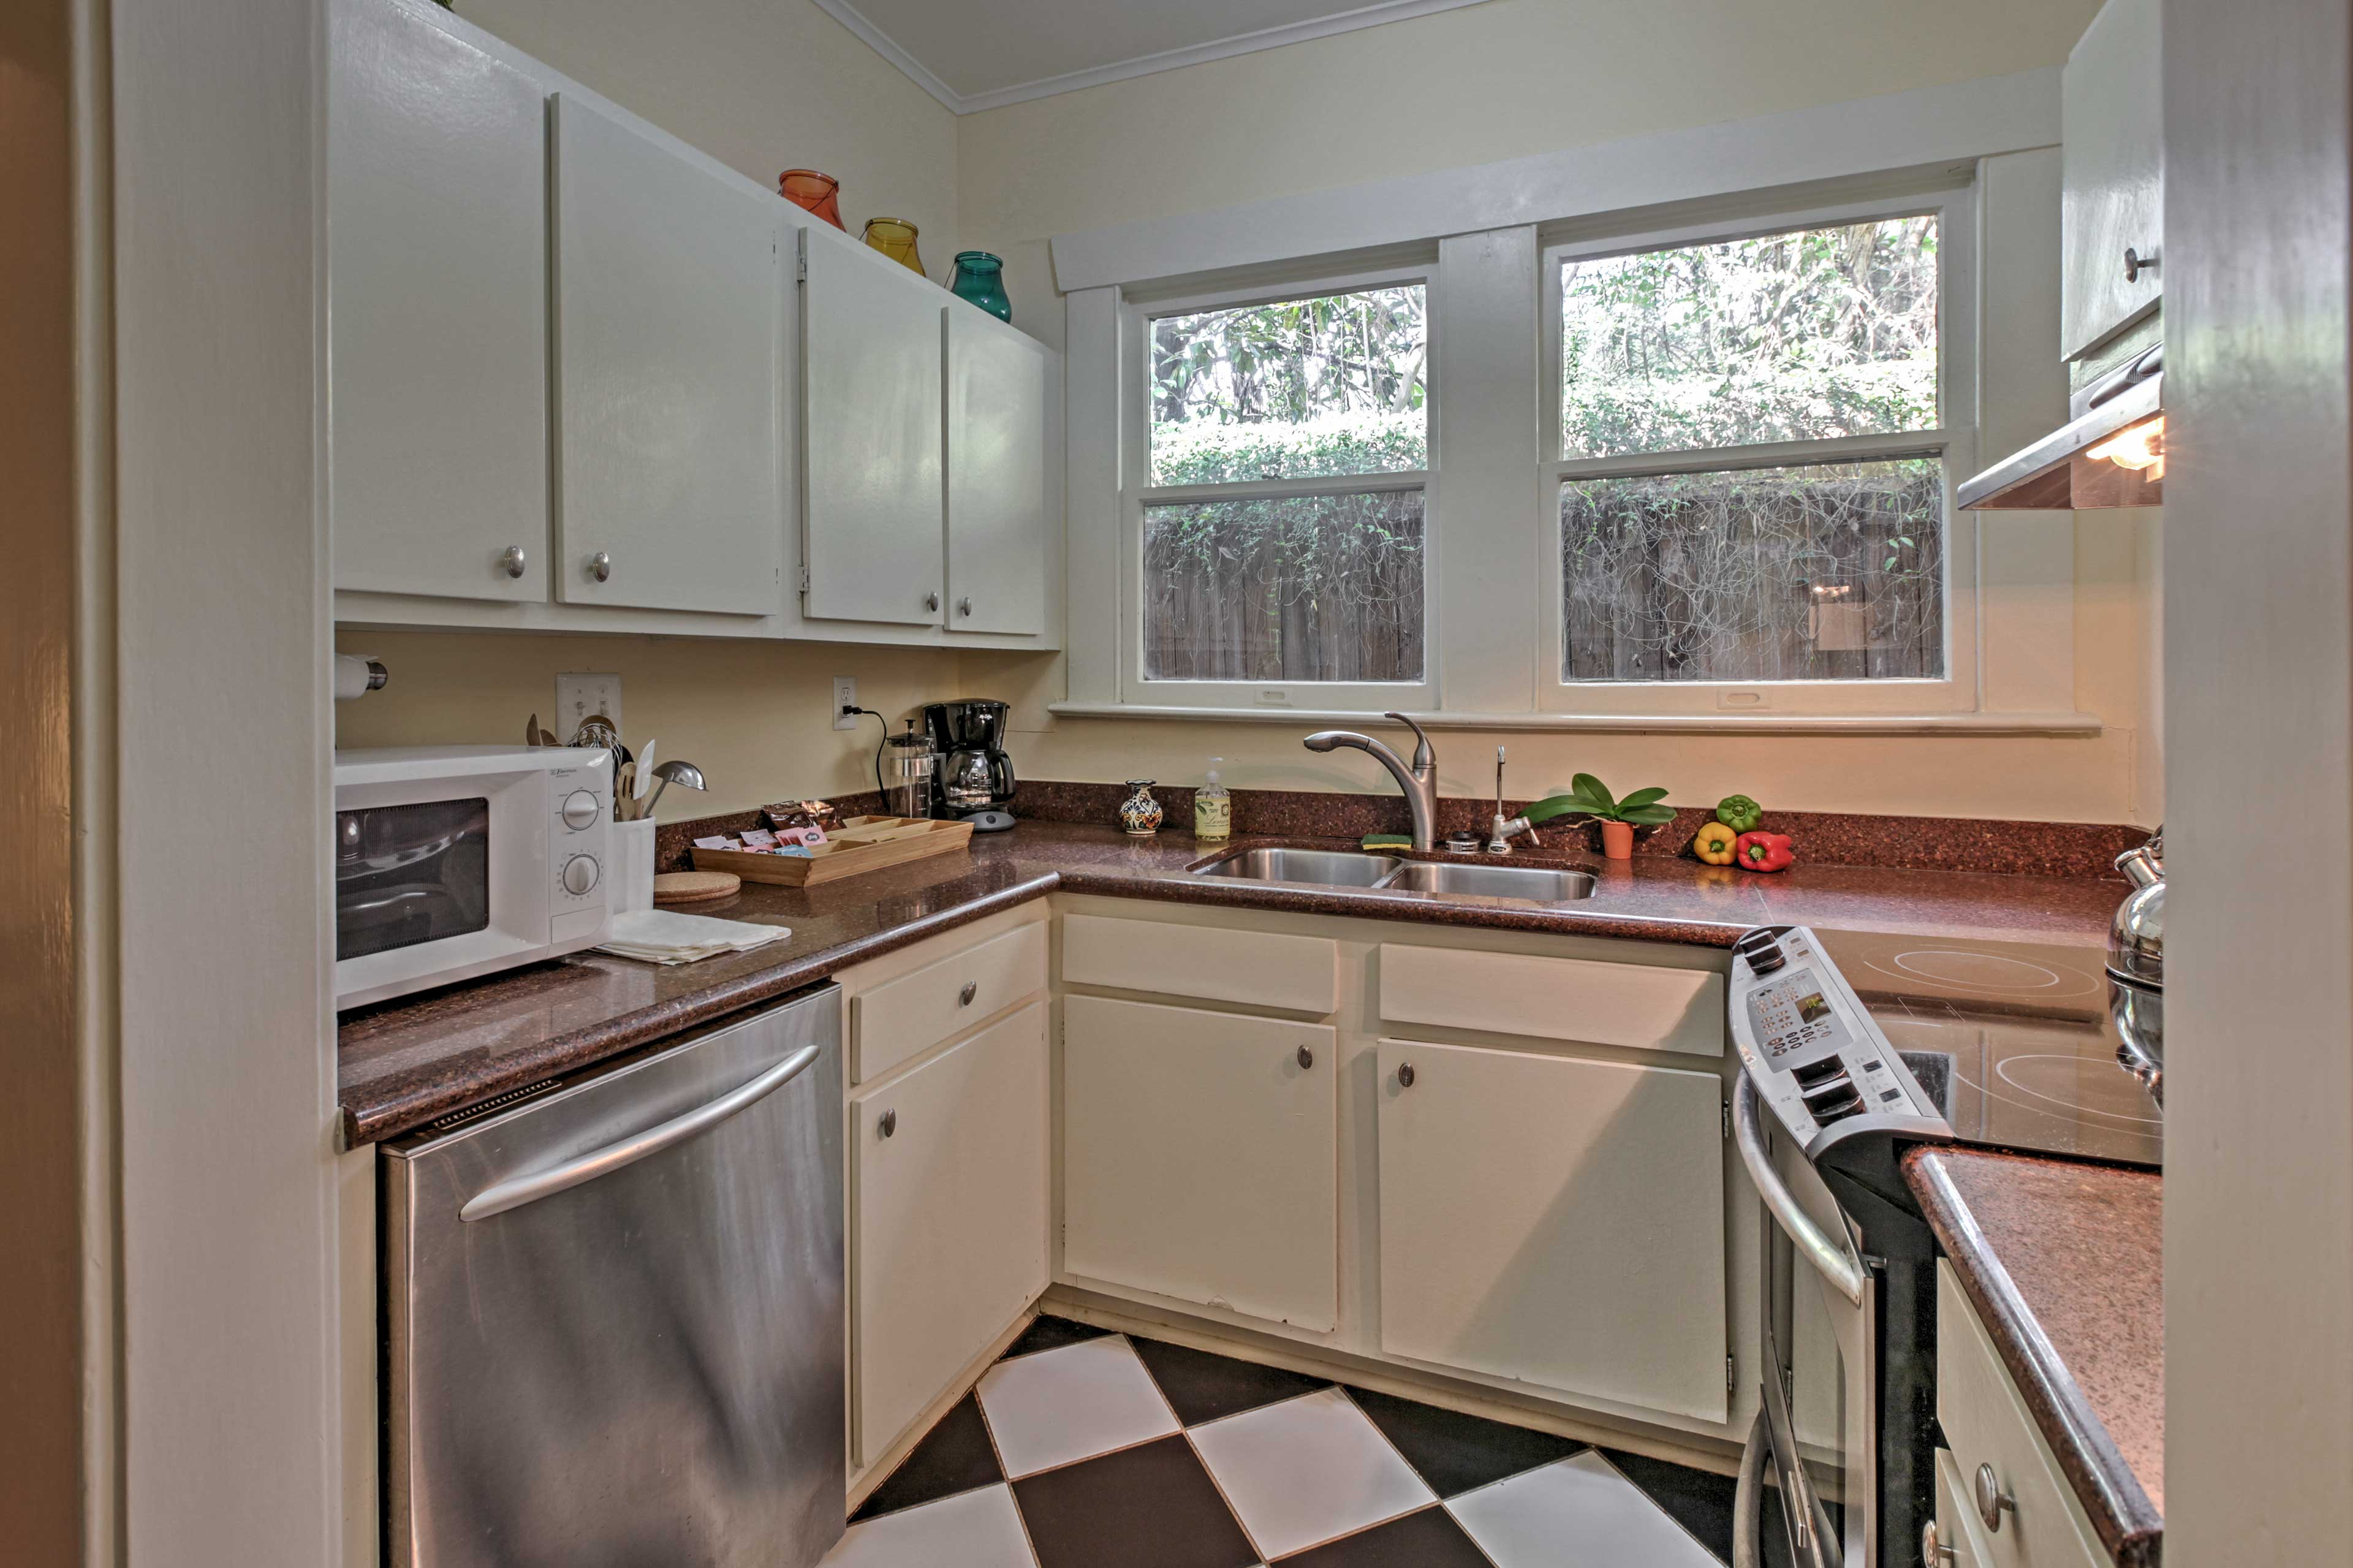 The fully equipped kitchen is stocked with all the necessary cooking gadgets.